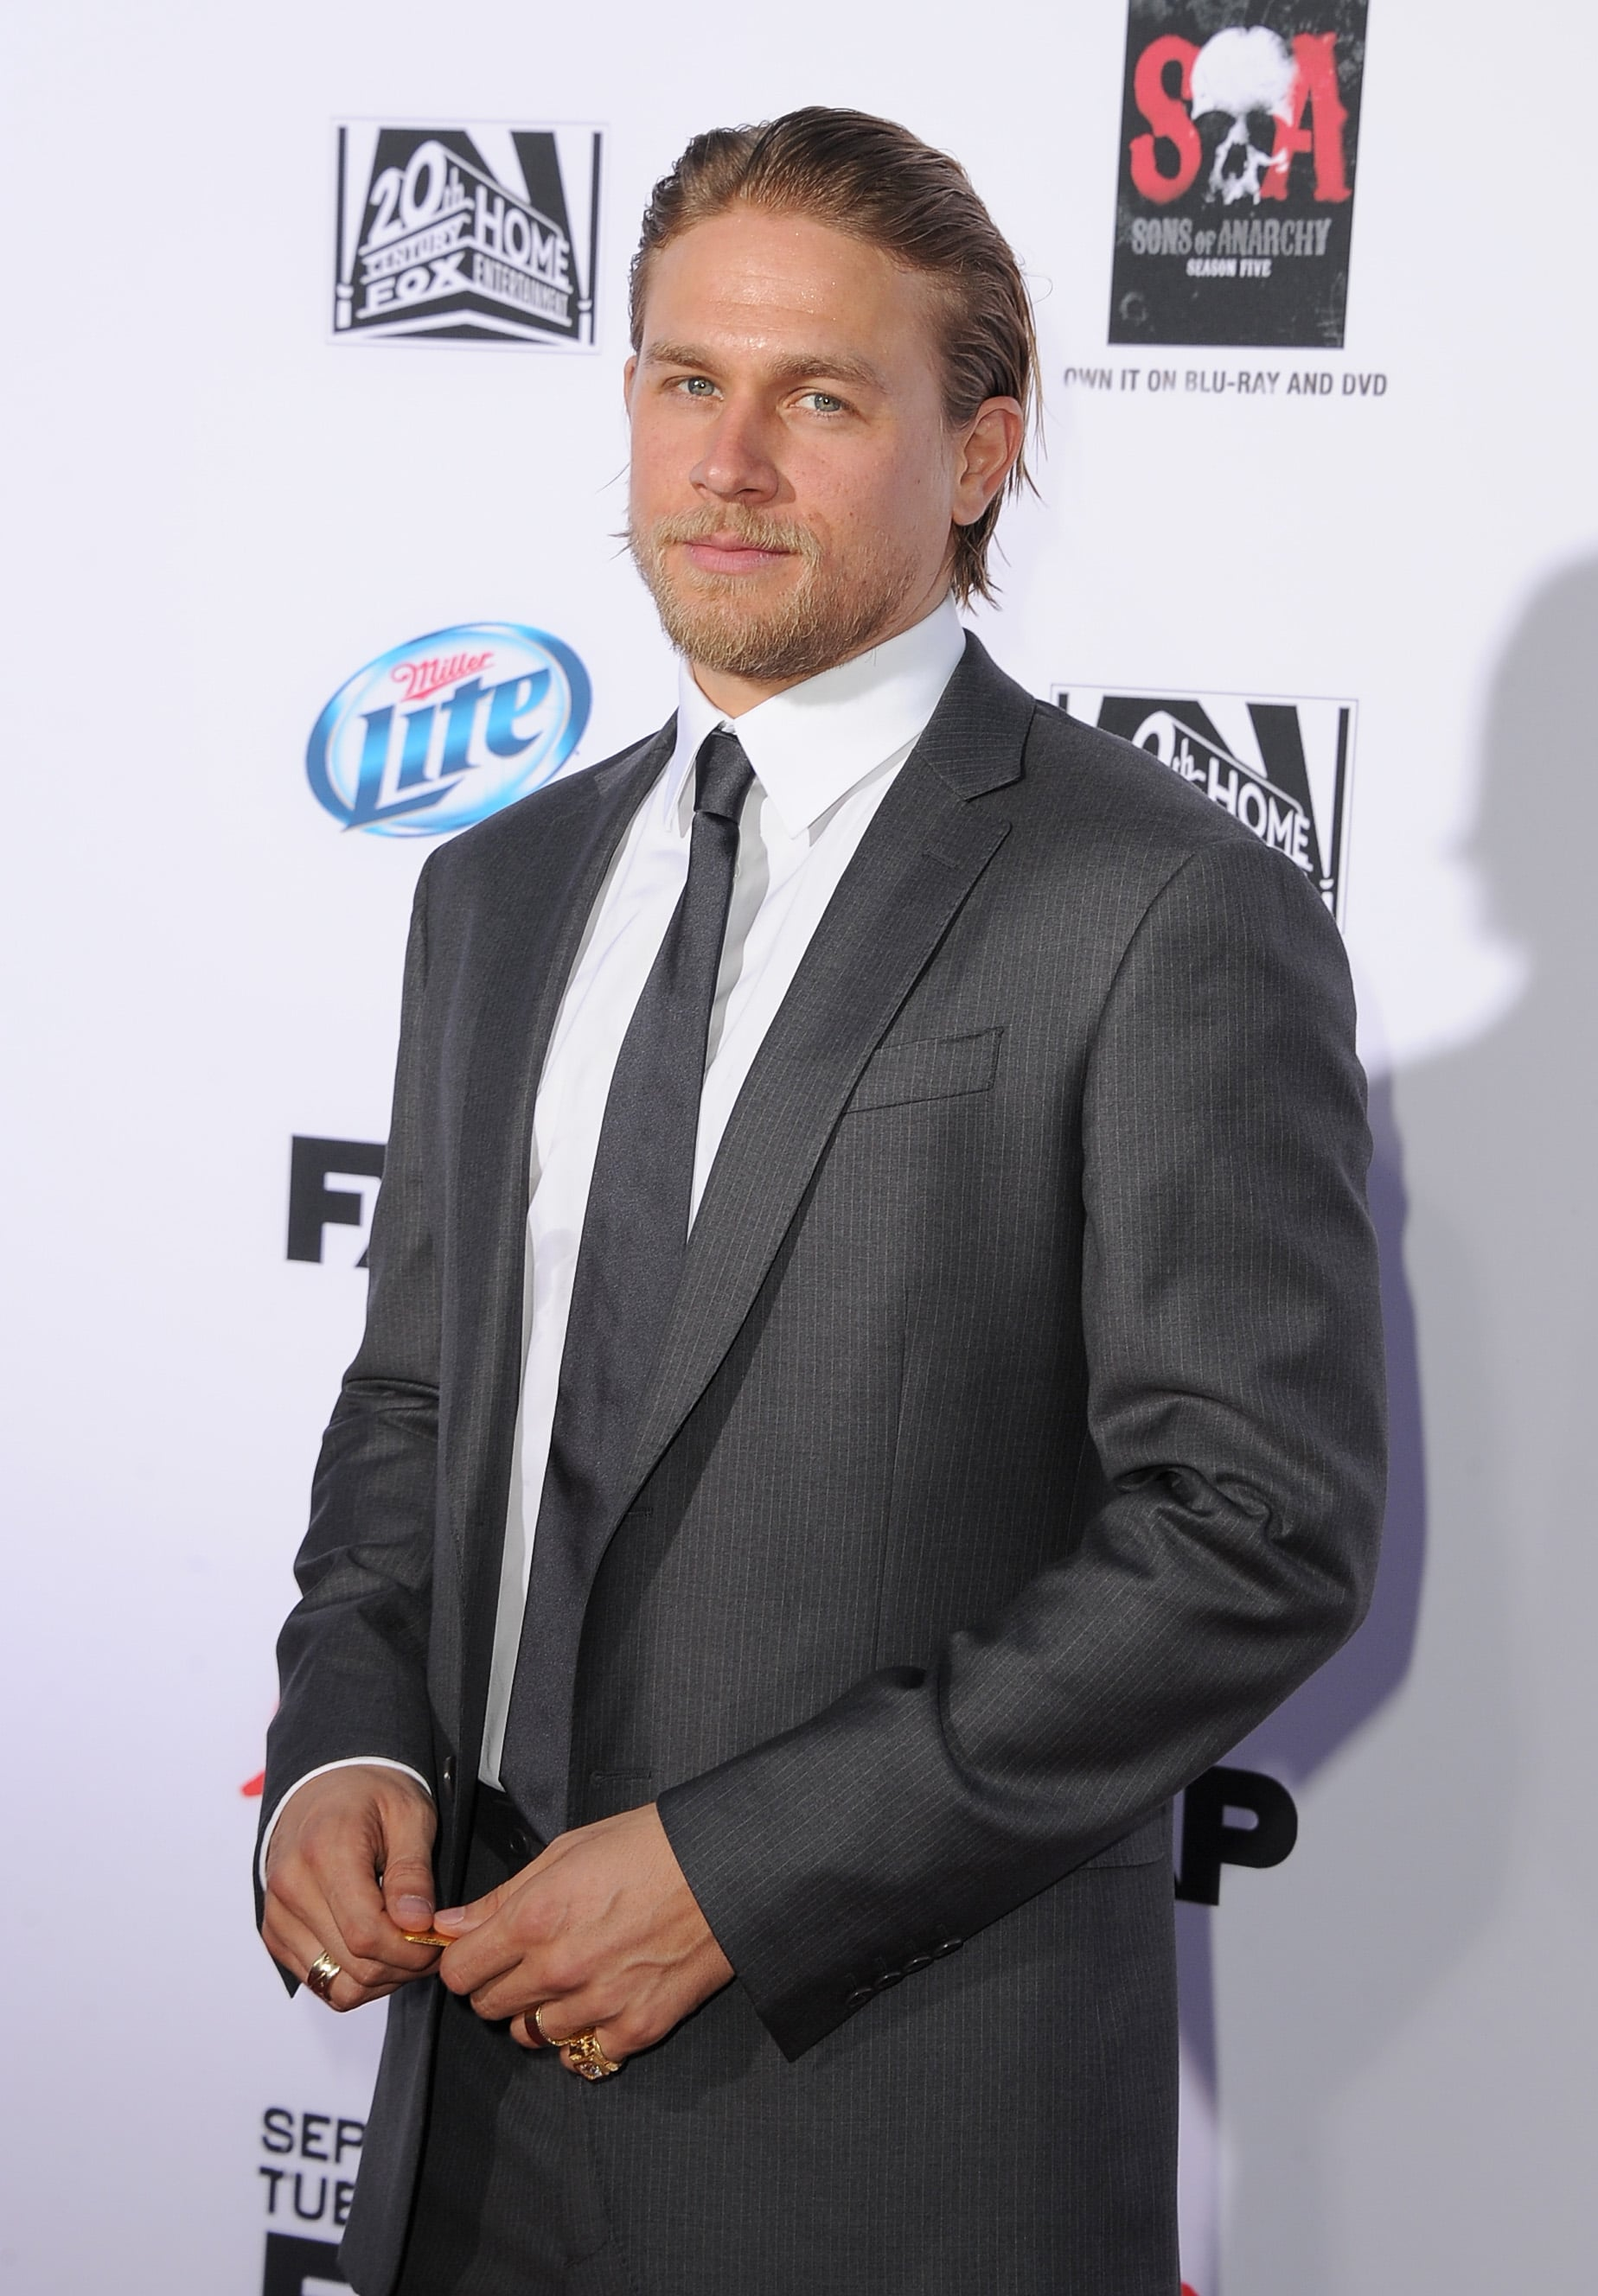 Biggest Shocker Charlie Hunnam Leaves Fifty Shades Of Grey The Best And Worst Of October Entertainment Popsugar Entertainment Photo 2